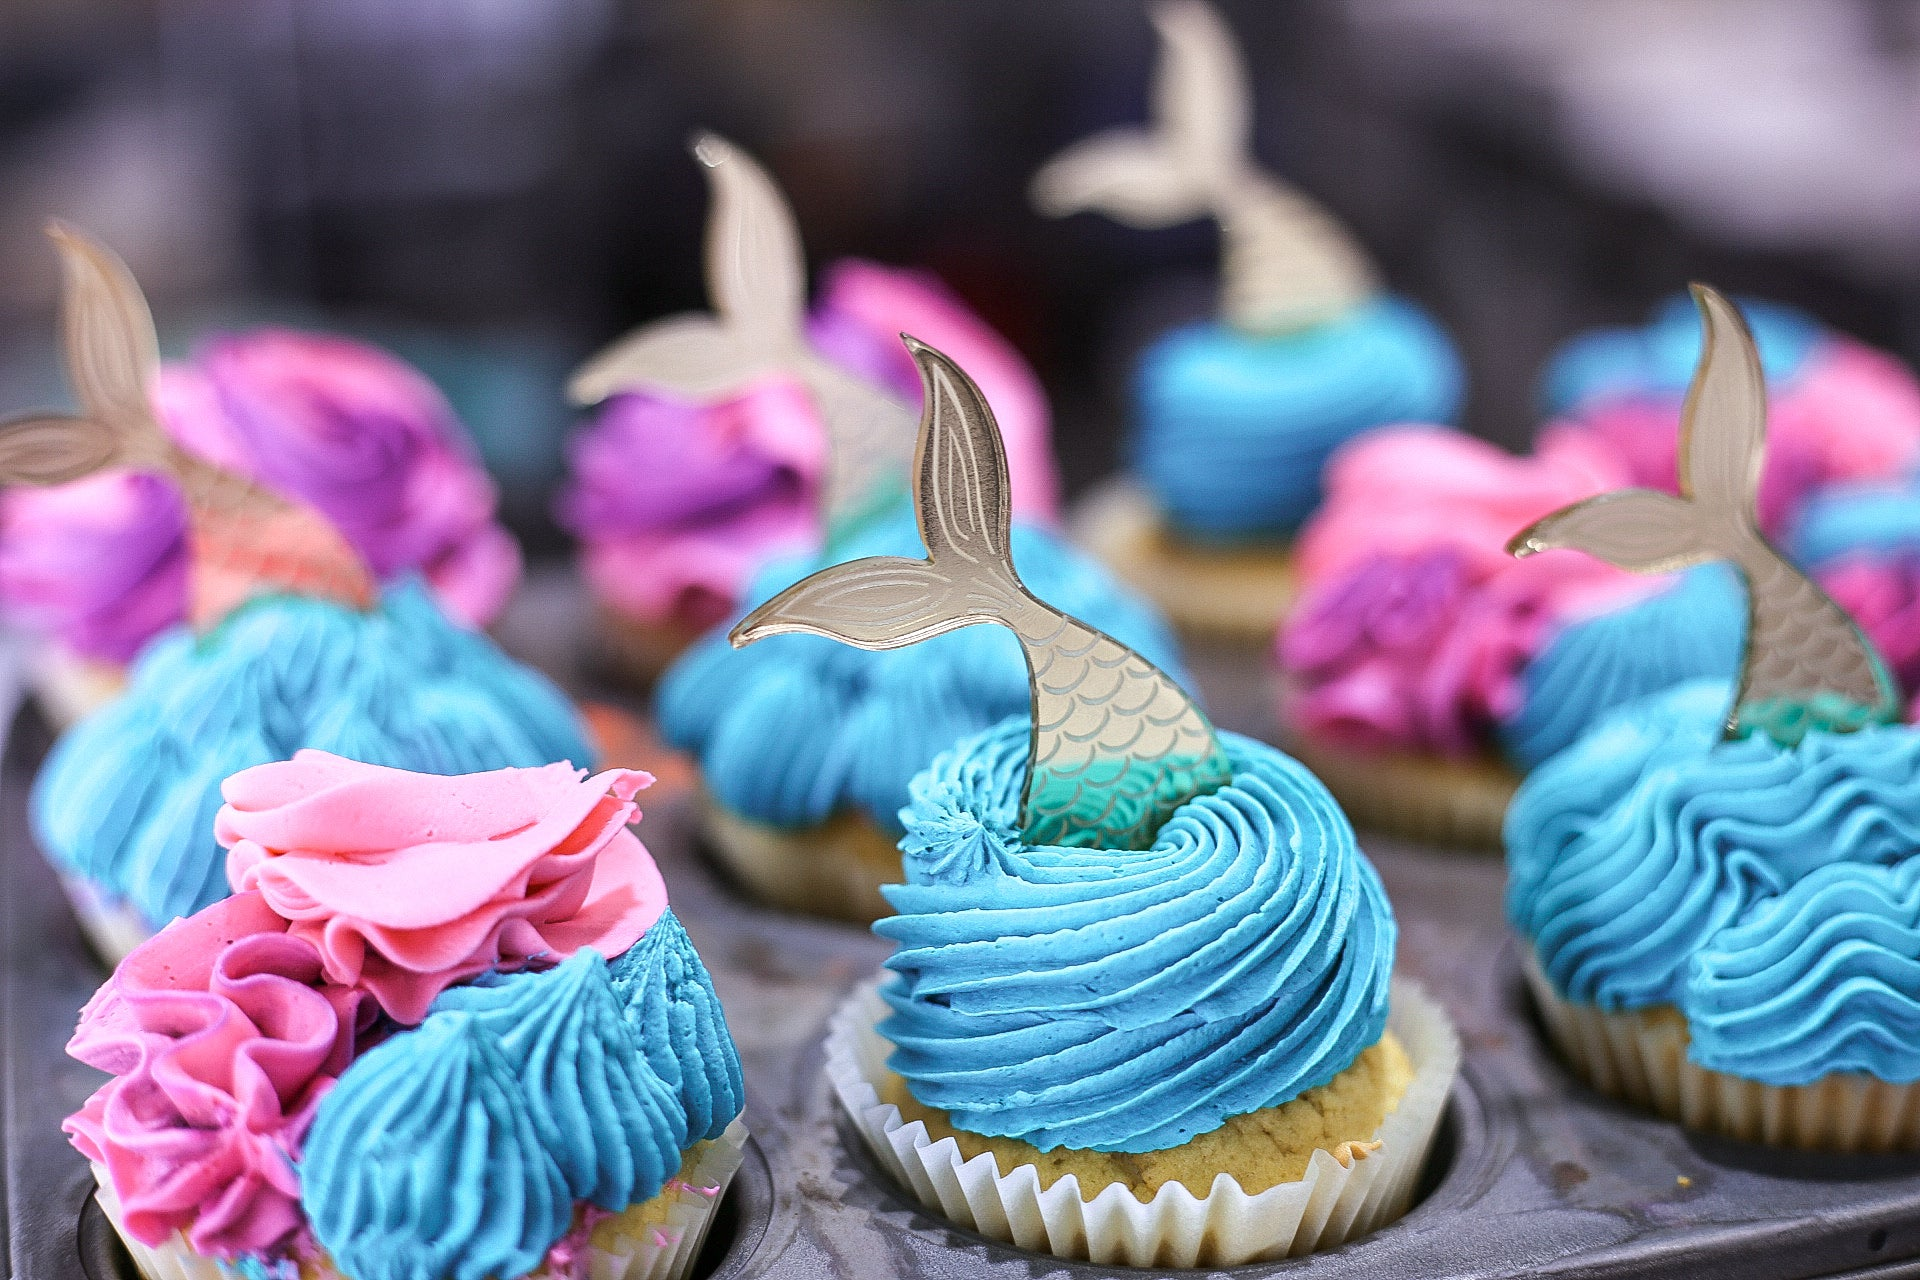 Mermaid Cupcakes with toppers (3 day minimum required)